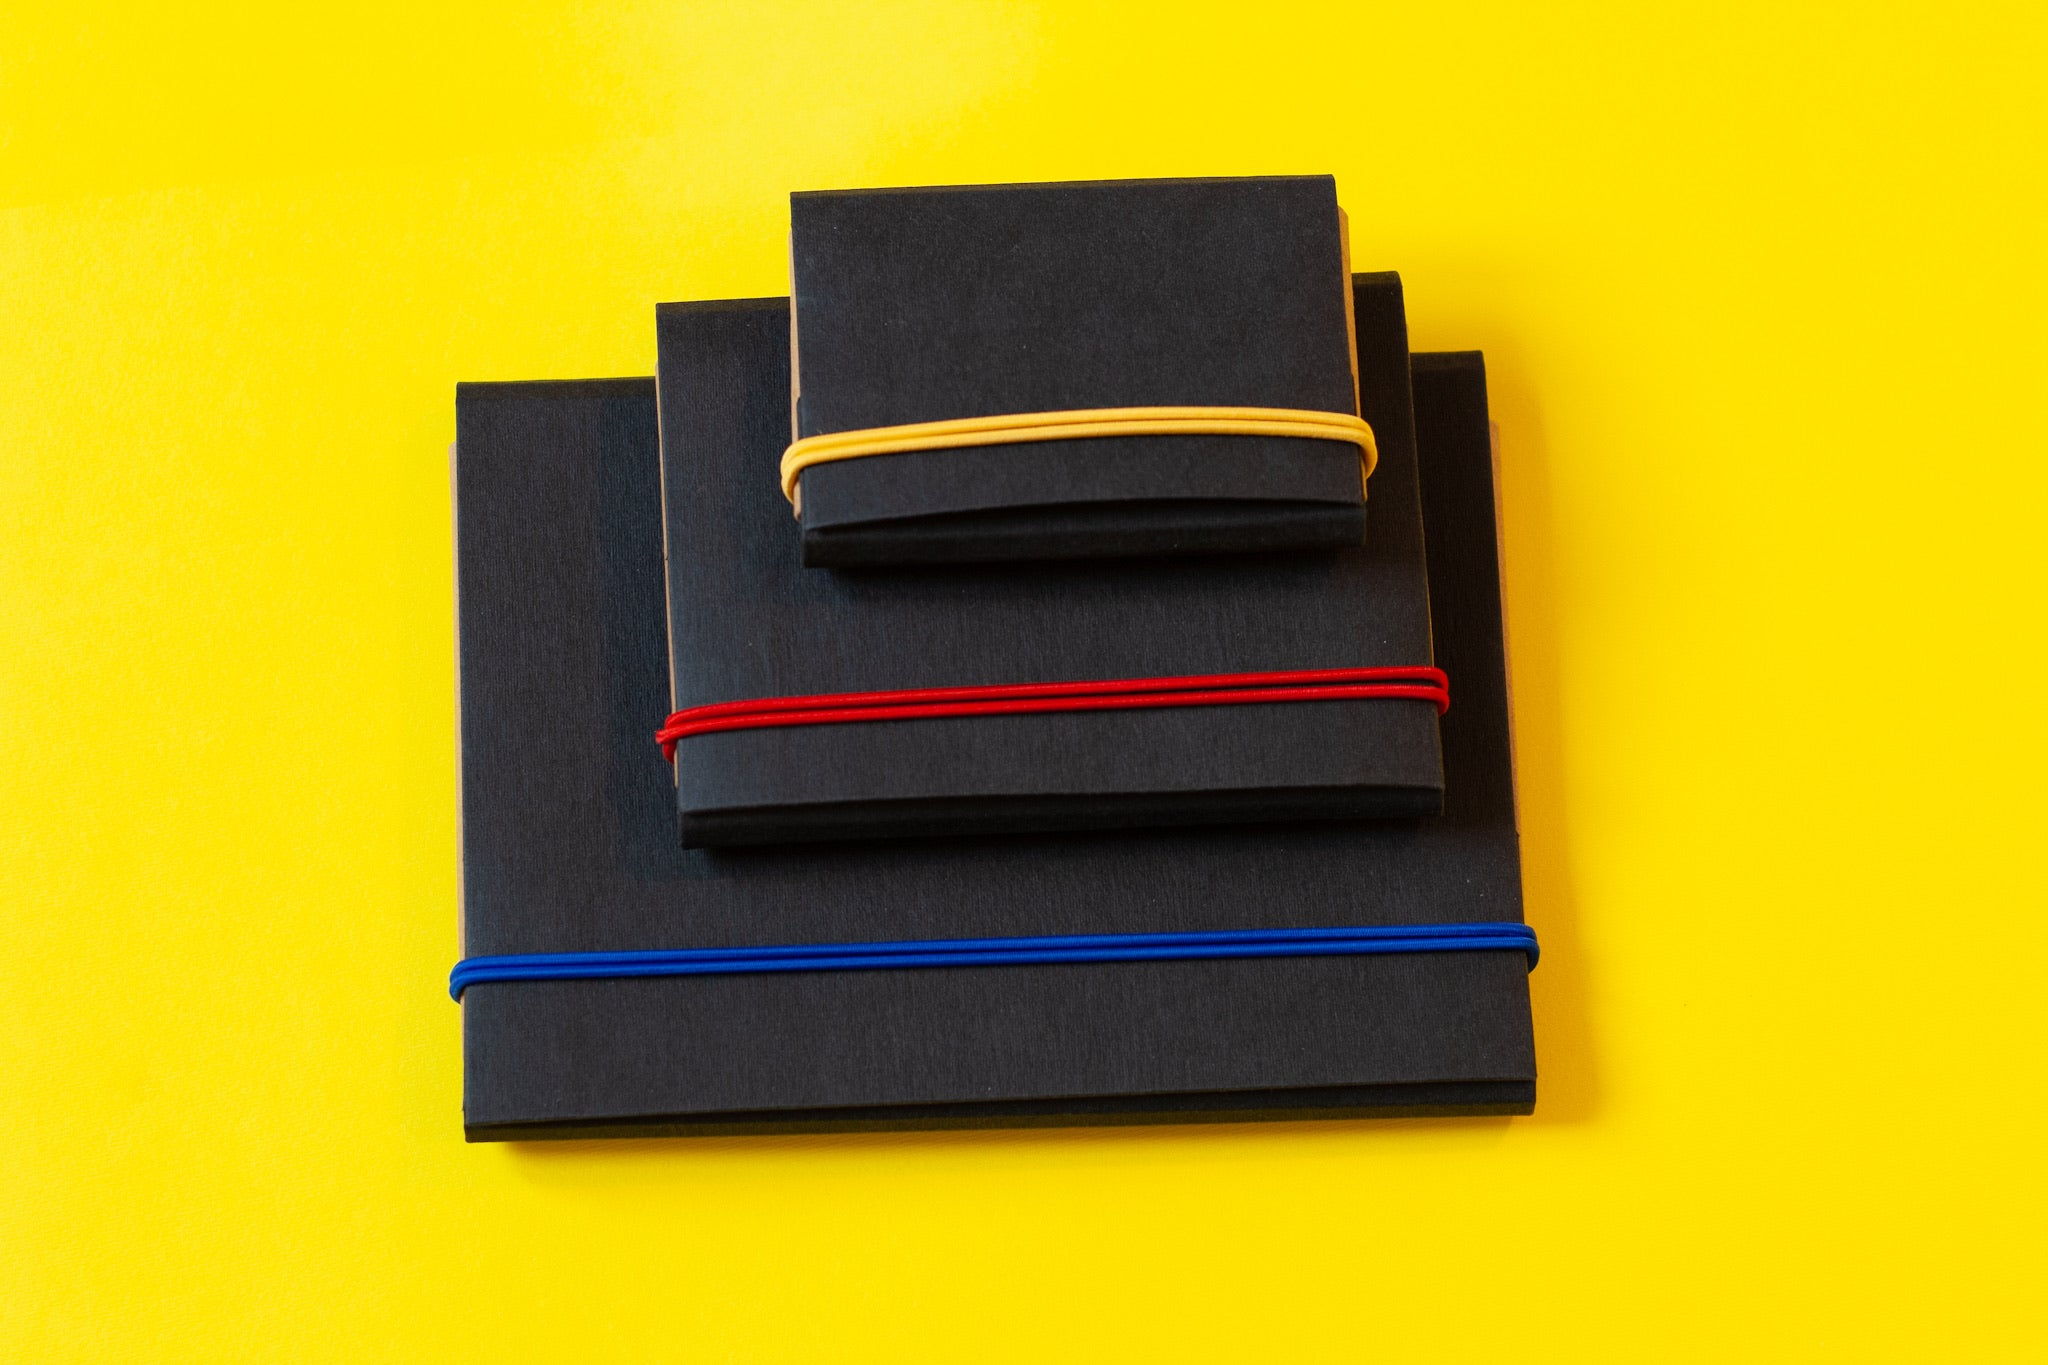 BAUHAUS pocket folder